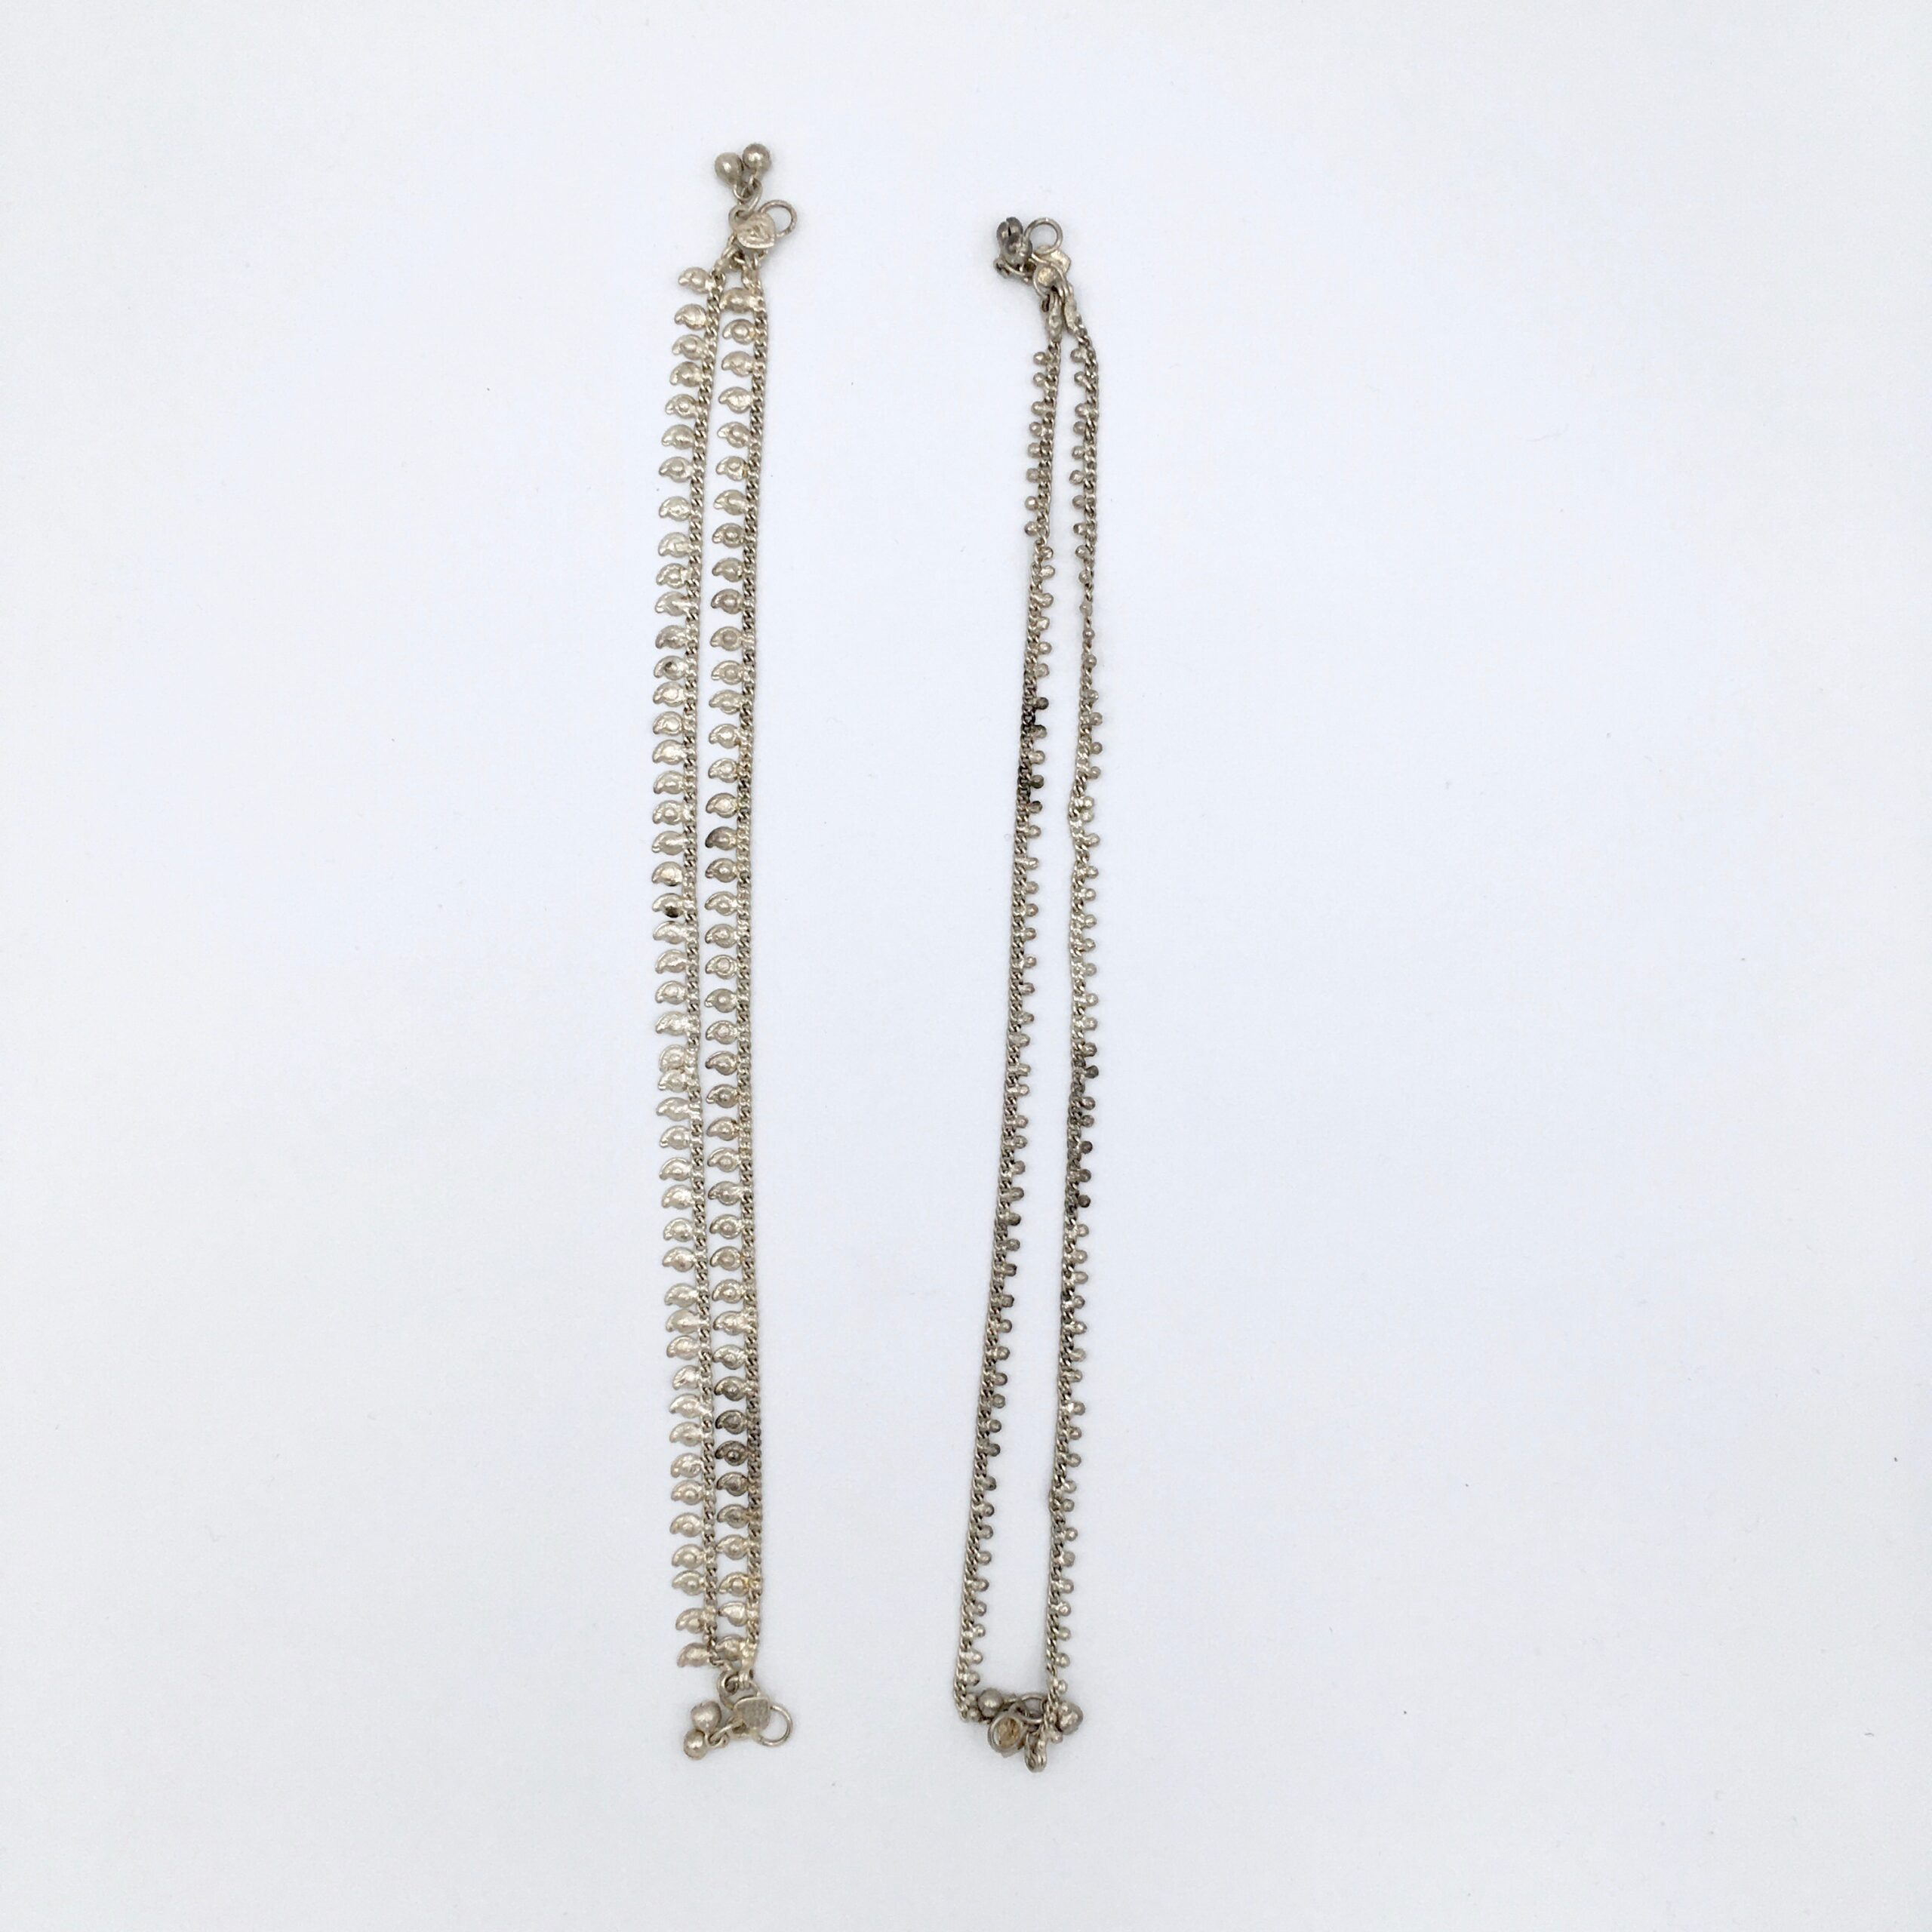 Silver Indian Anklets